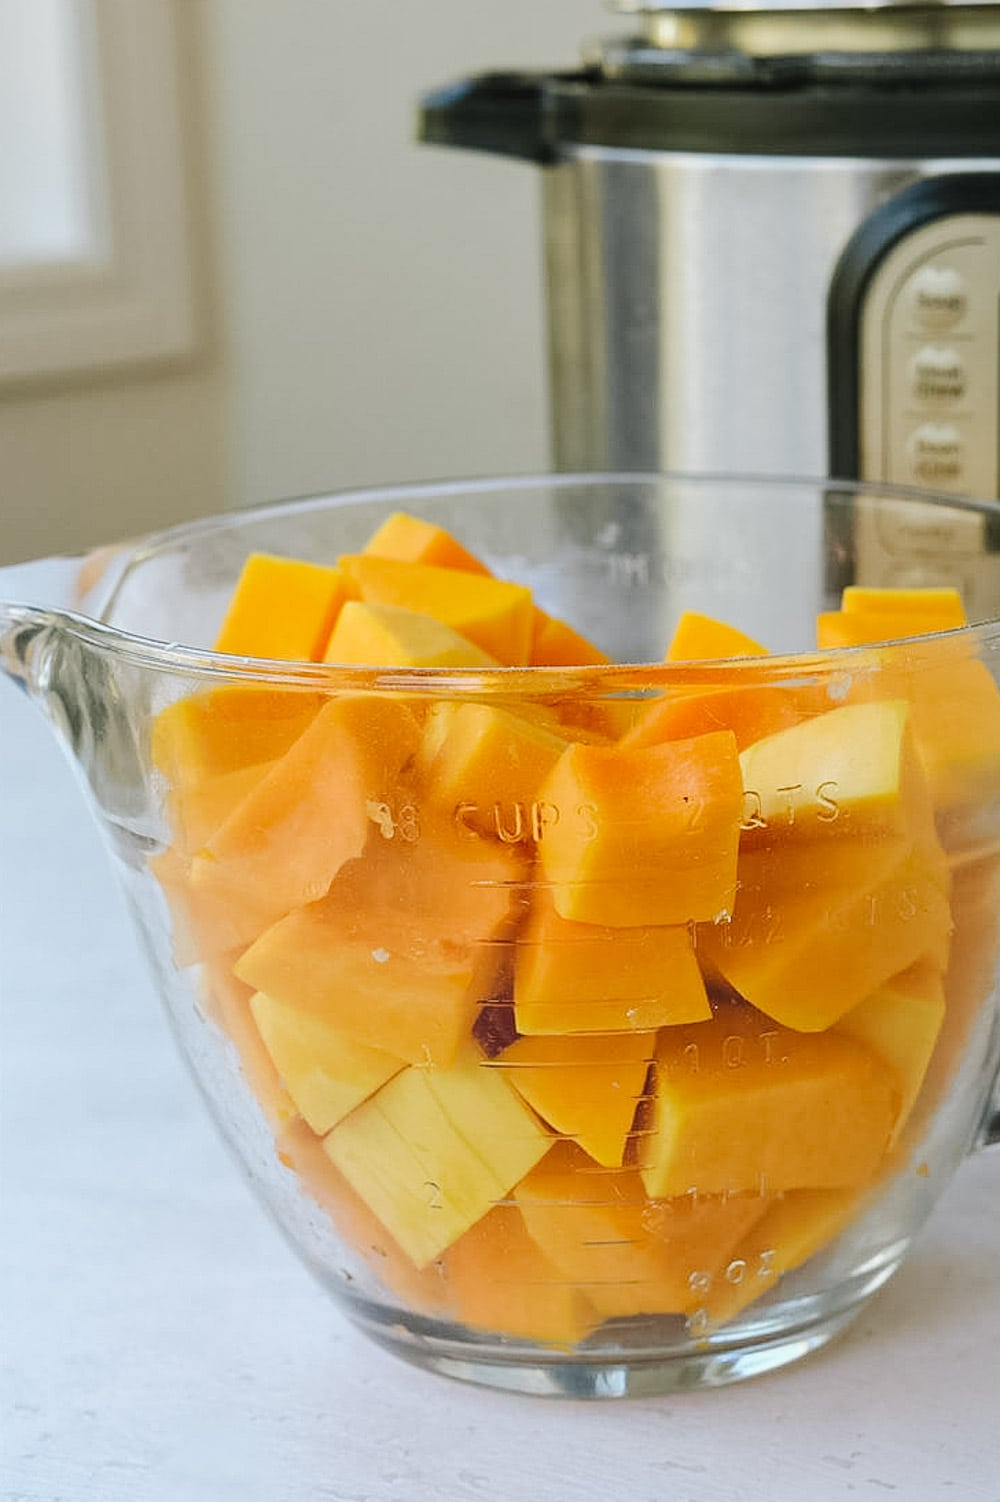 Cubed butternut squash in measuring cup